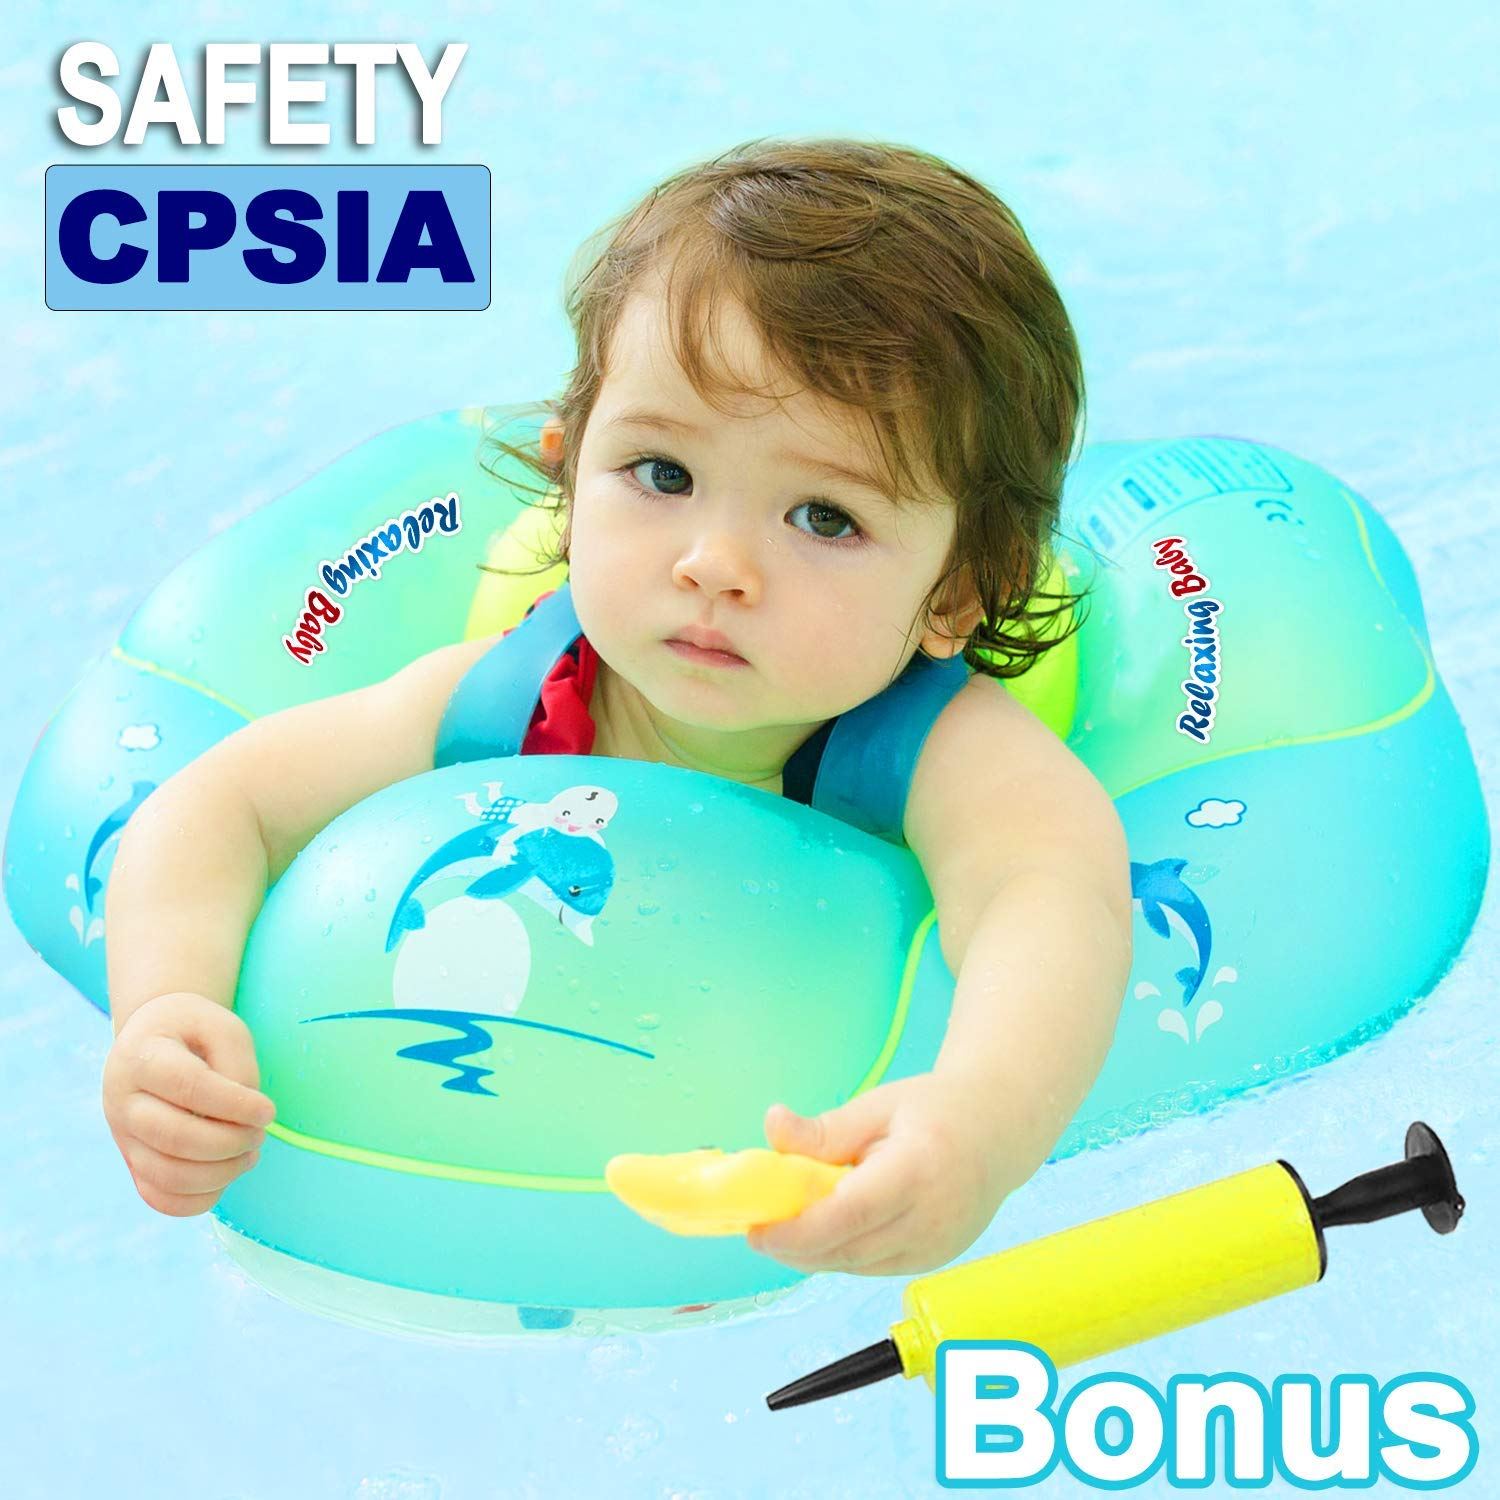 Baby Pool Float【Upgrade】Baby Swimming Float Ring with Safety Seat Crotch Strap and Adjustable Waist Strap Swim Trainer Age of 3-30 Months 11-35 lb Baby Floats Summer Outdoor Beach Water Fun Pools Toy